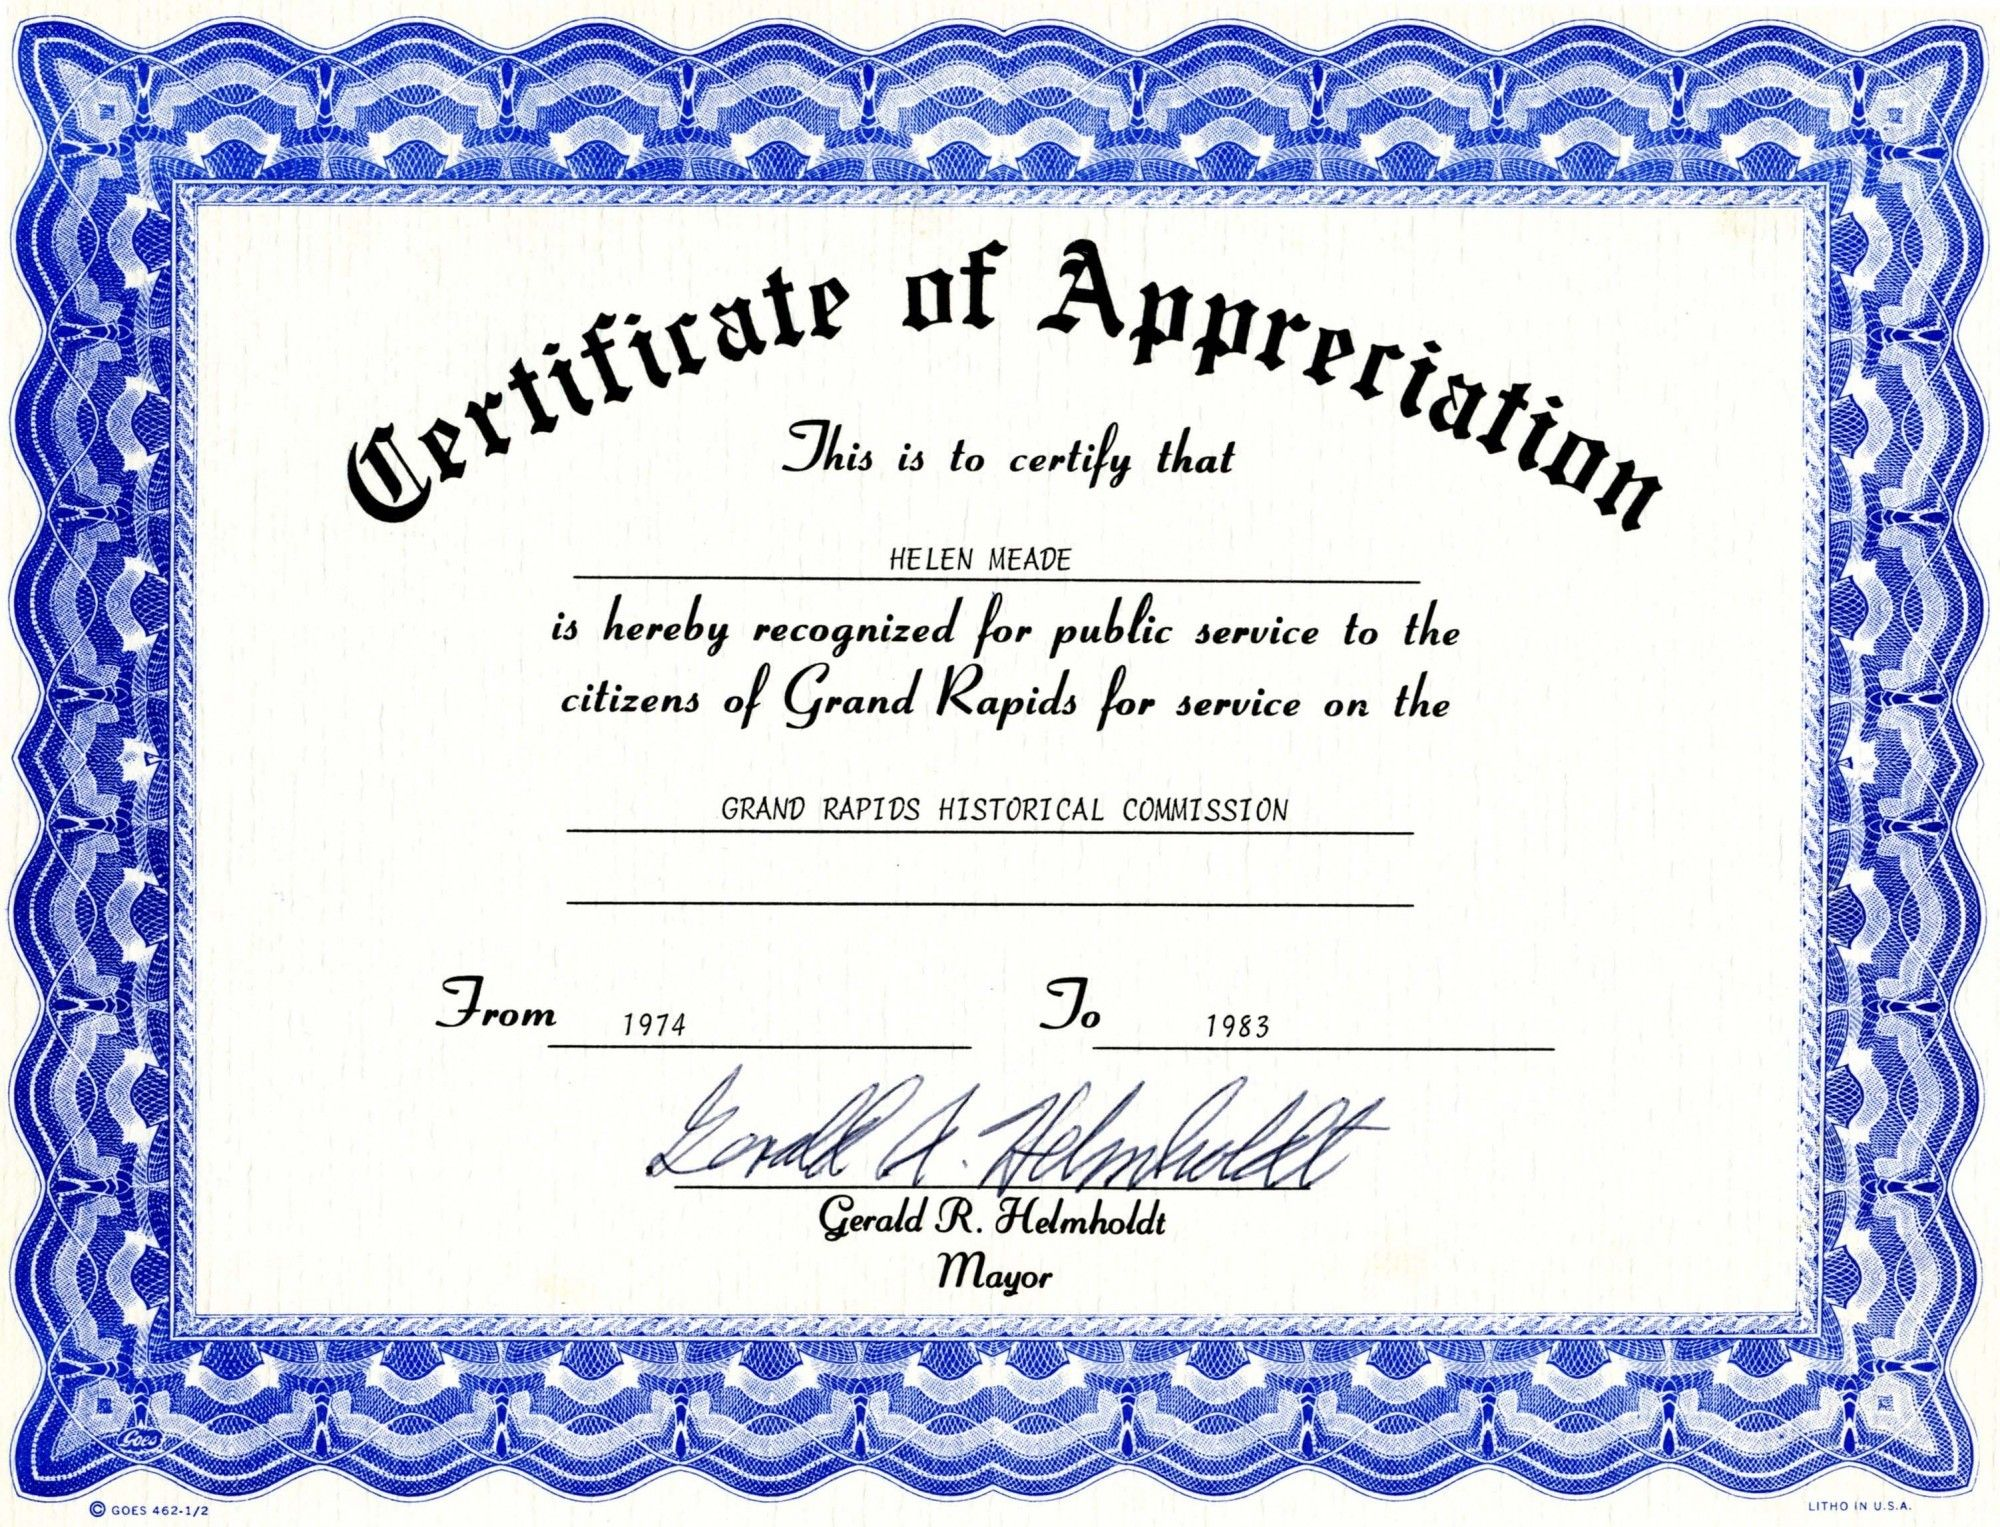 How To Write A Certificate Of Appreciation - arxiusarquitectura With Free Template For Certificate Of Recognition